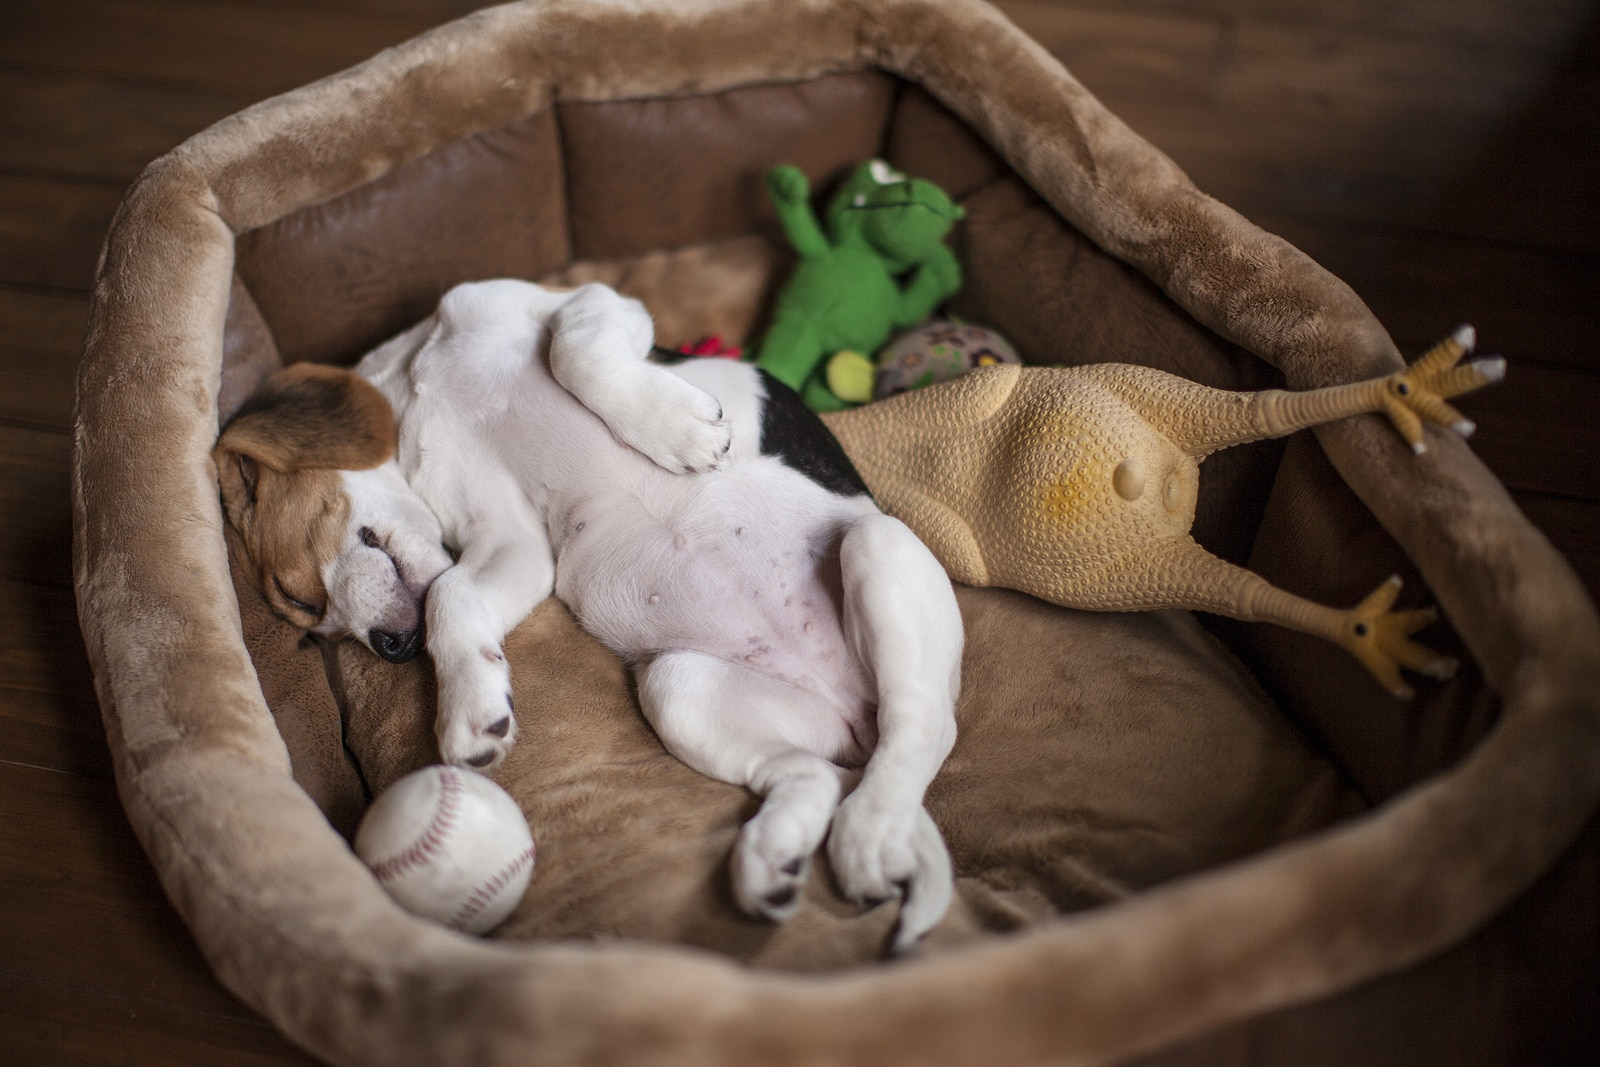 Puppy sleeps on her back in a brown dog bed with toys around her.